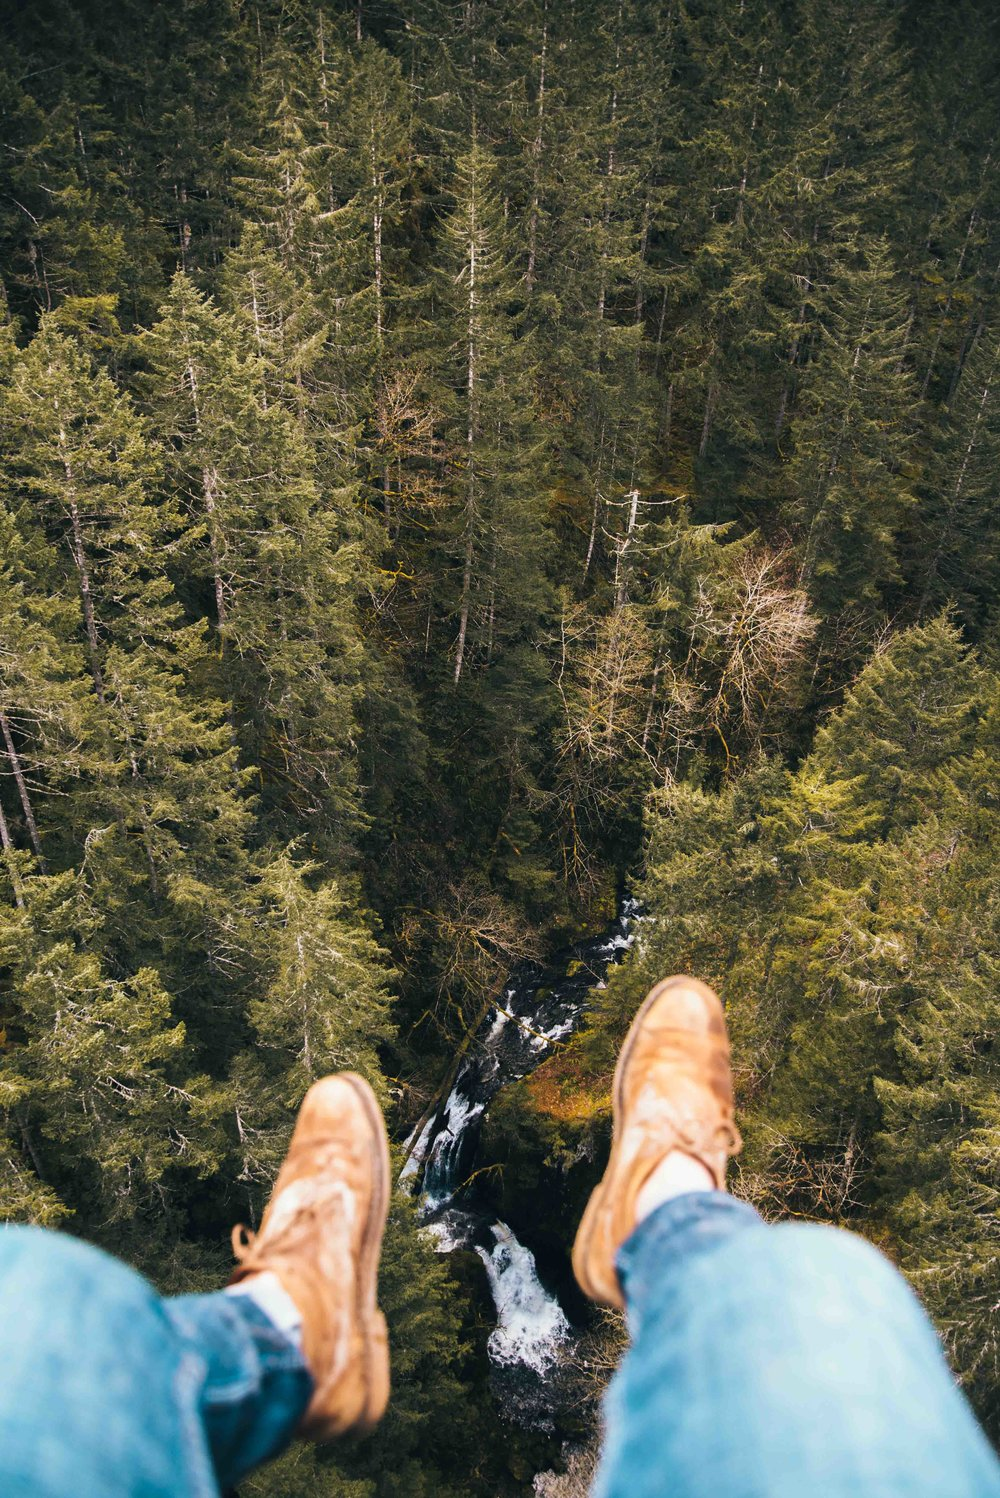 """Am I really even a photographer on the internet if I don't nearly kill myself getting these photos of my feet hanging over a nice view?"""